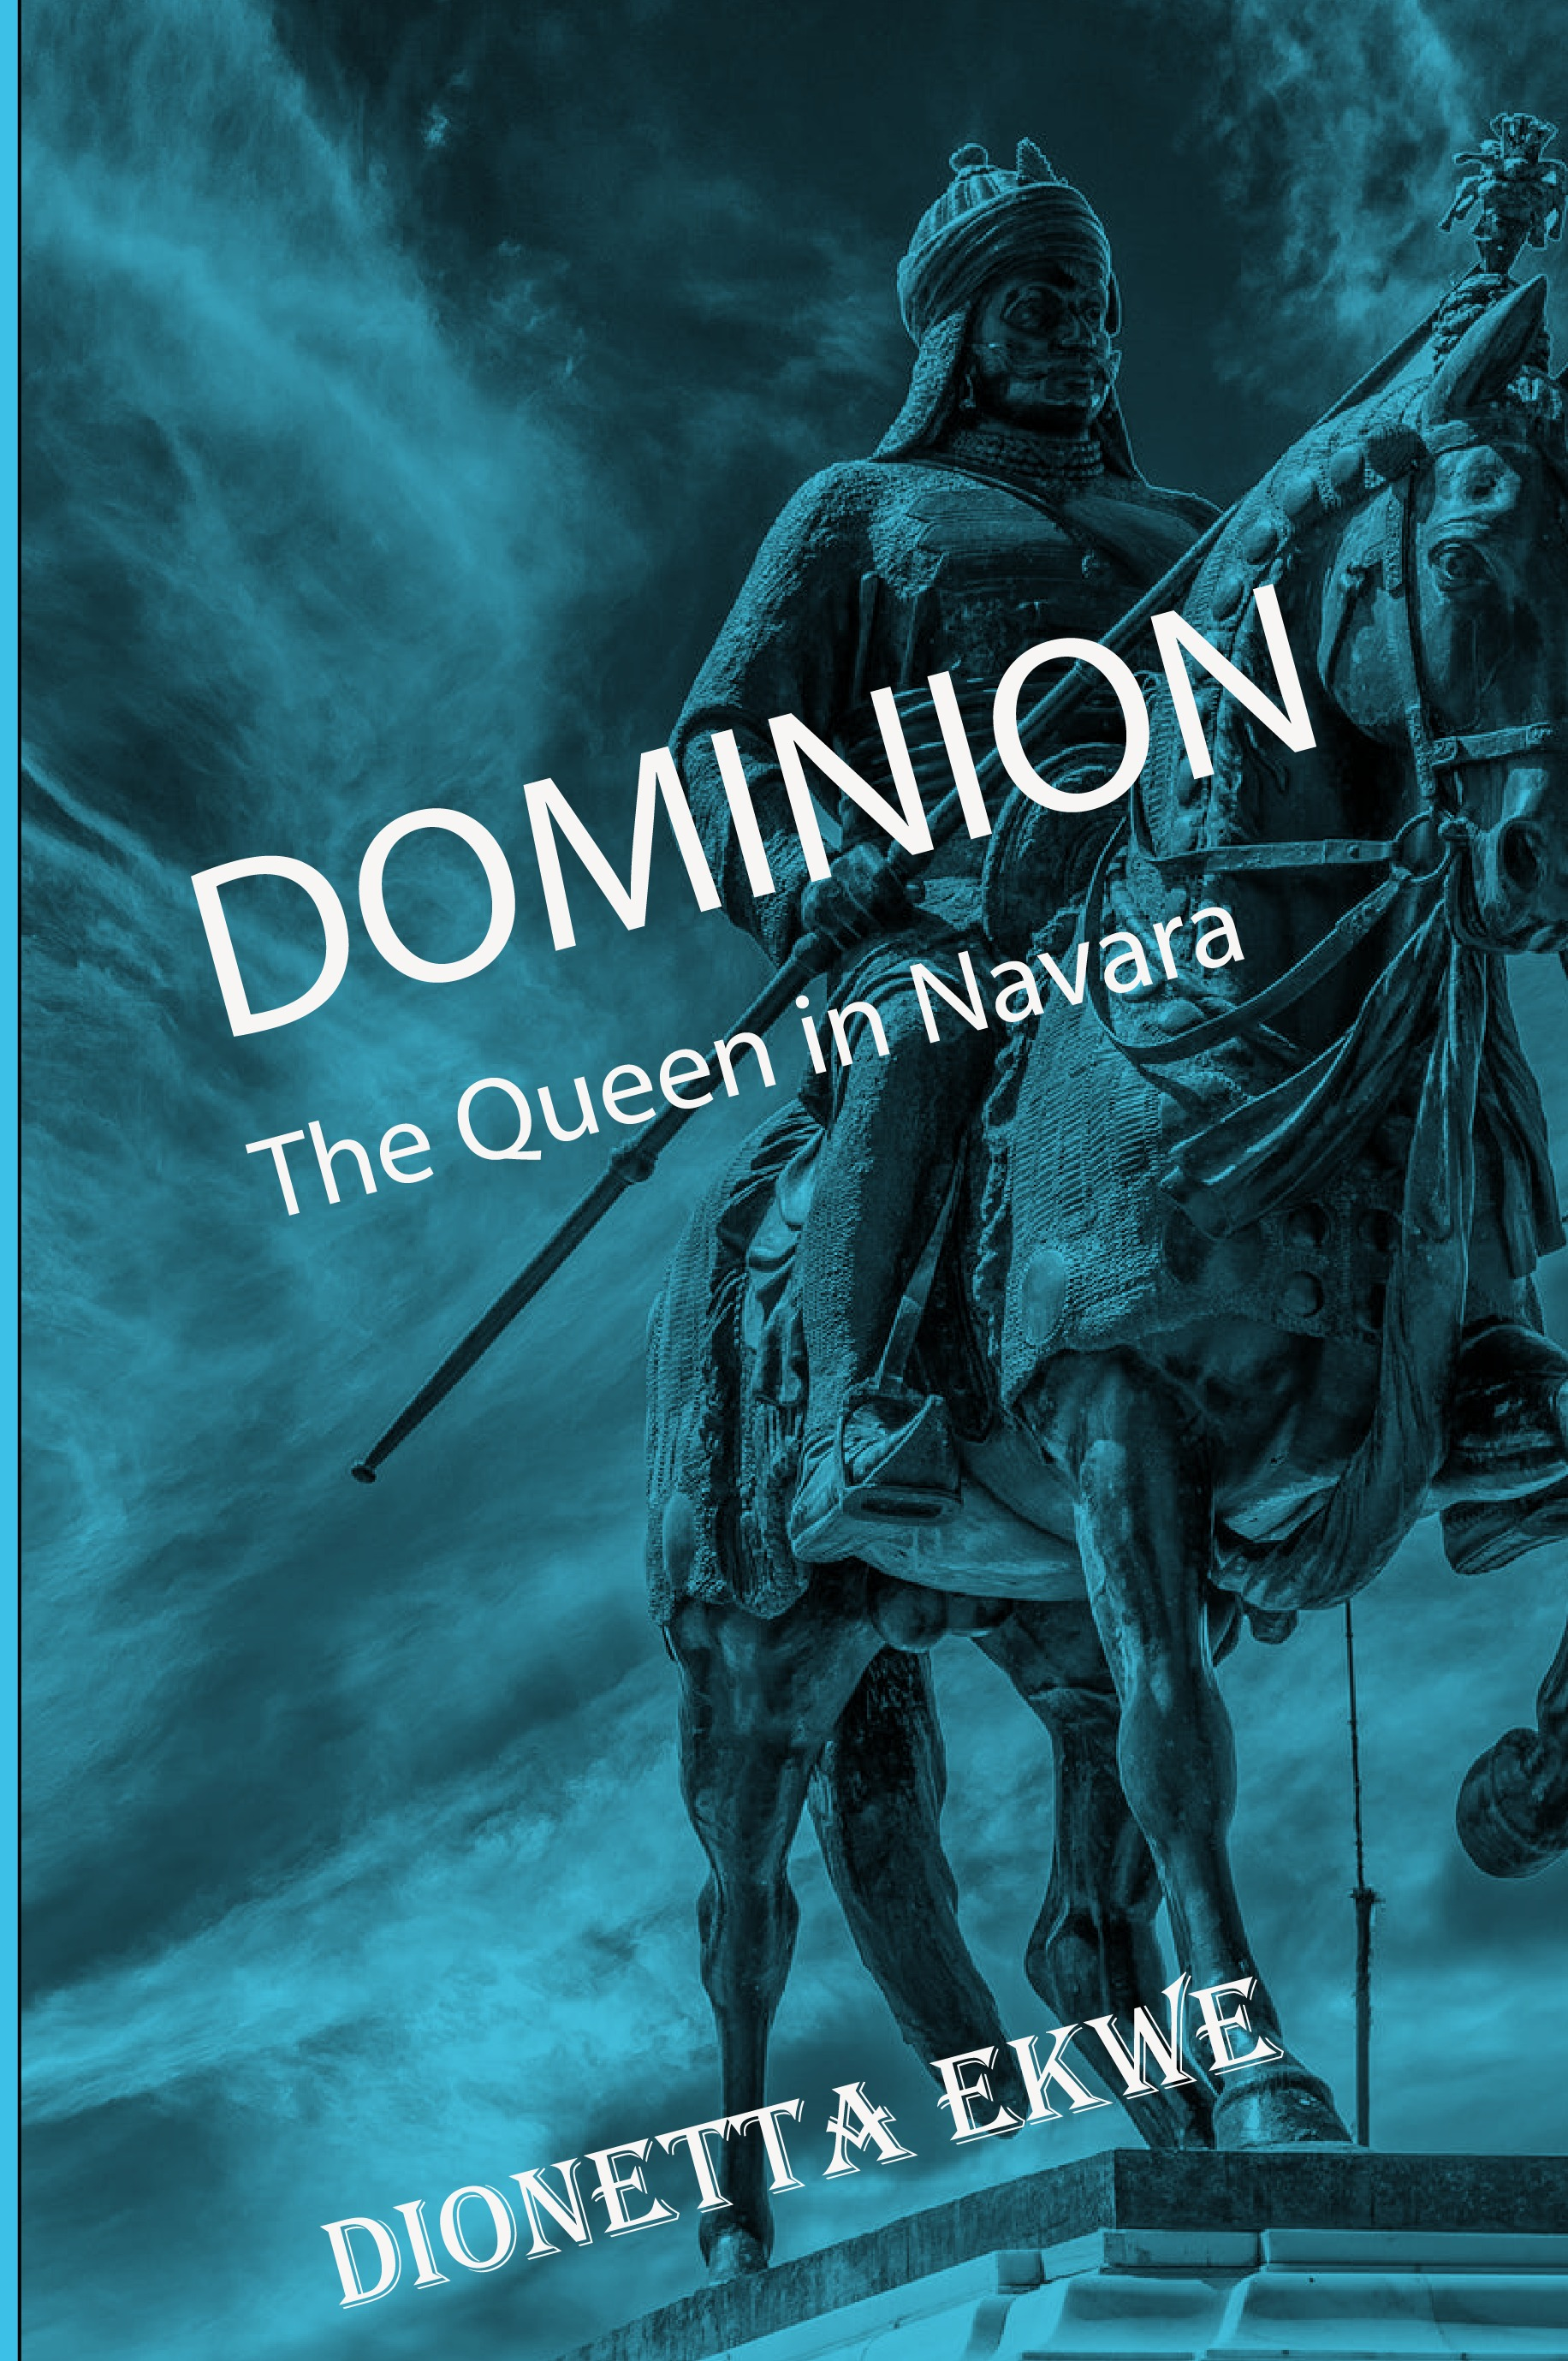 Dominion : The Queen in Navara